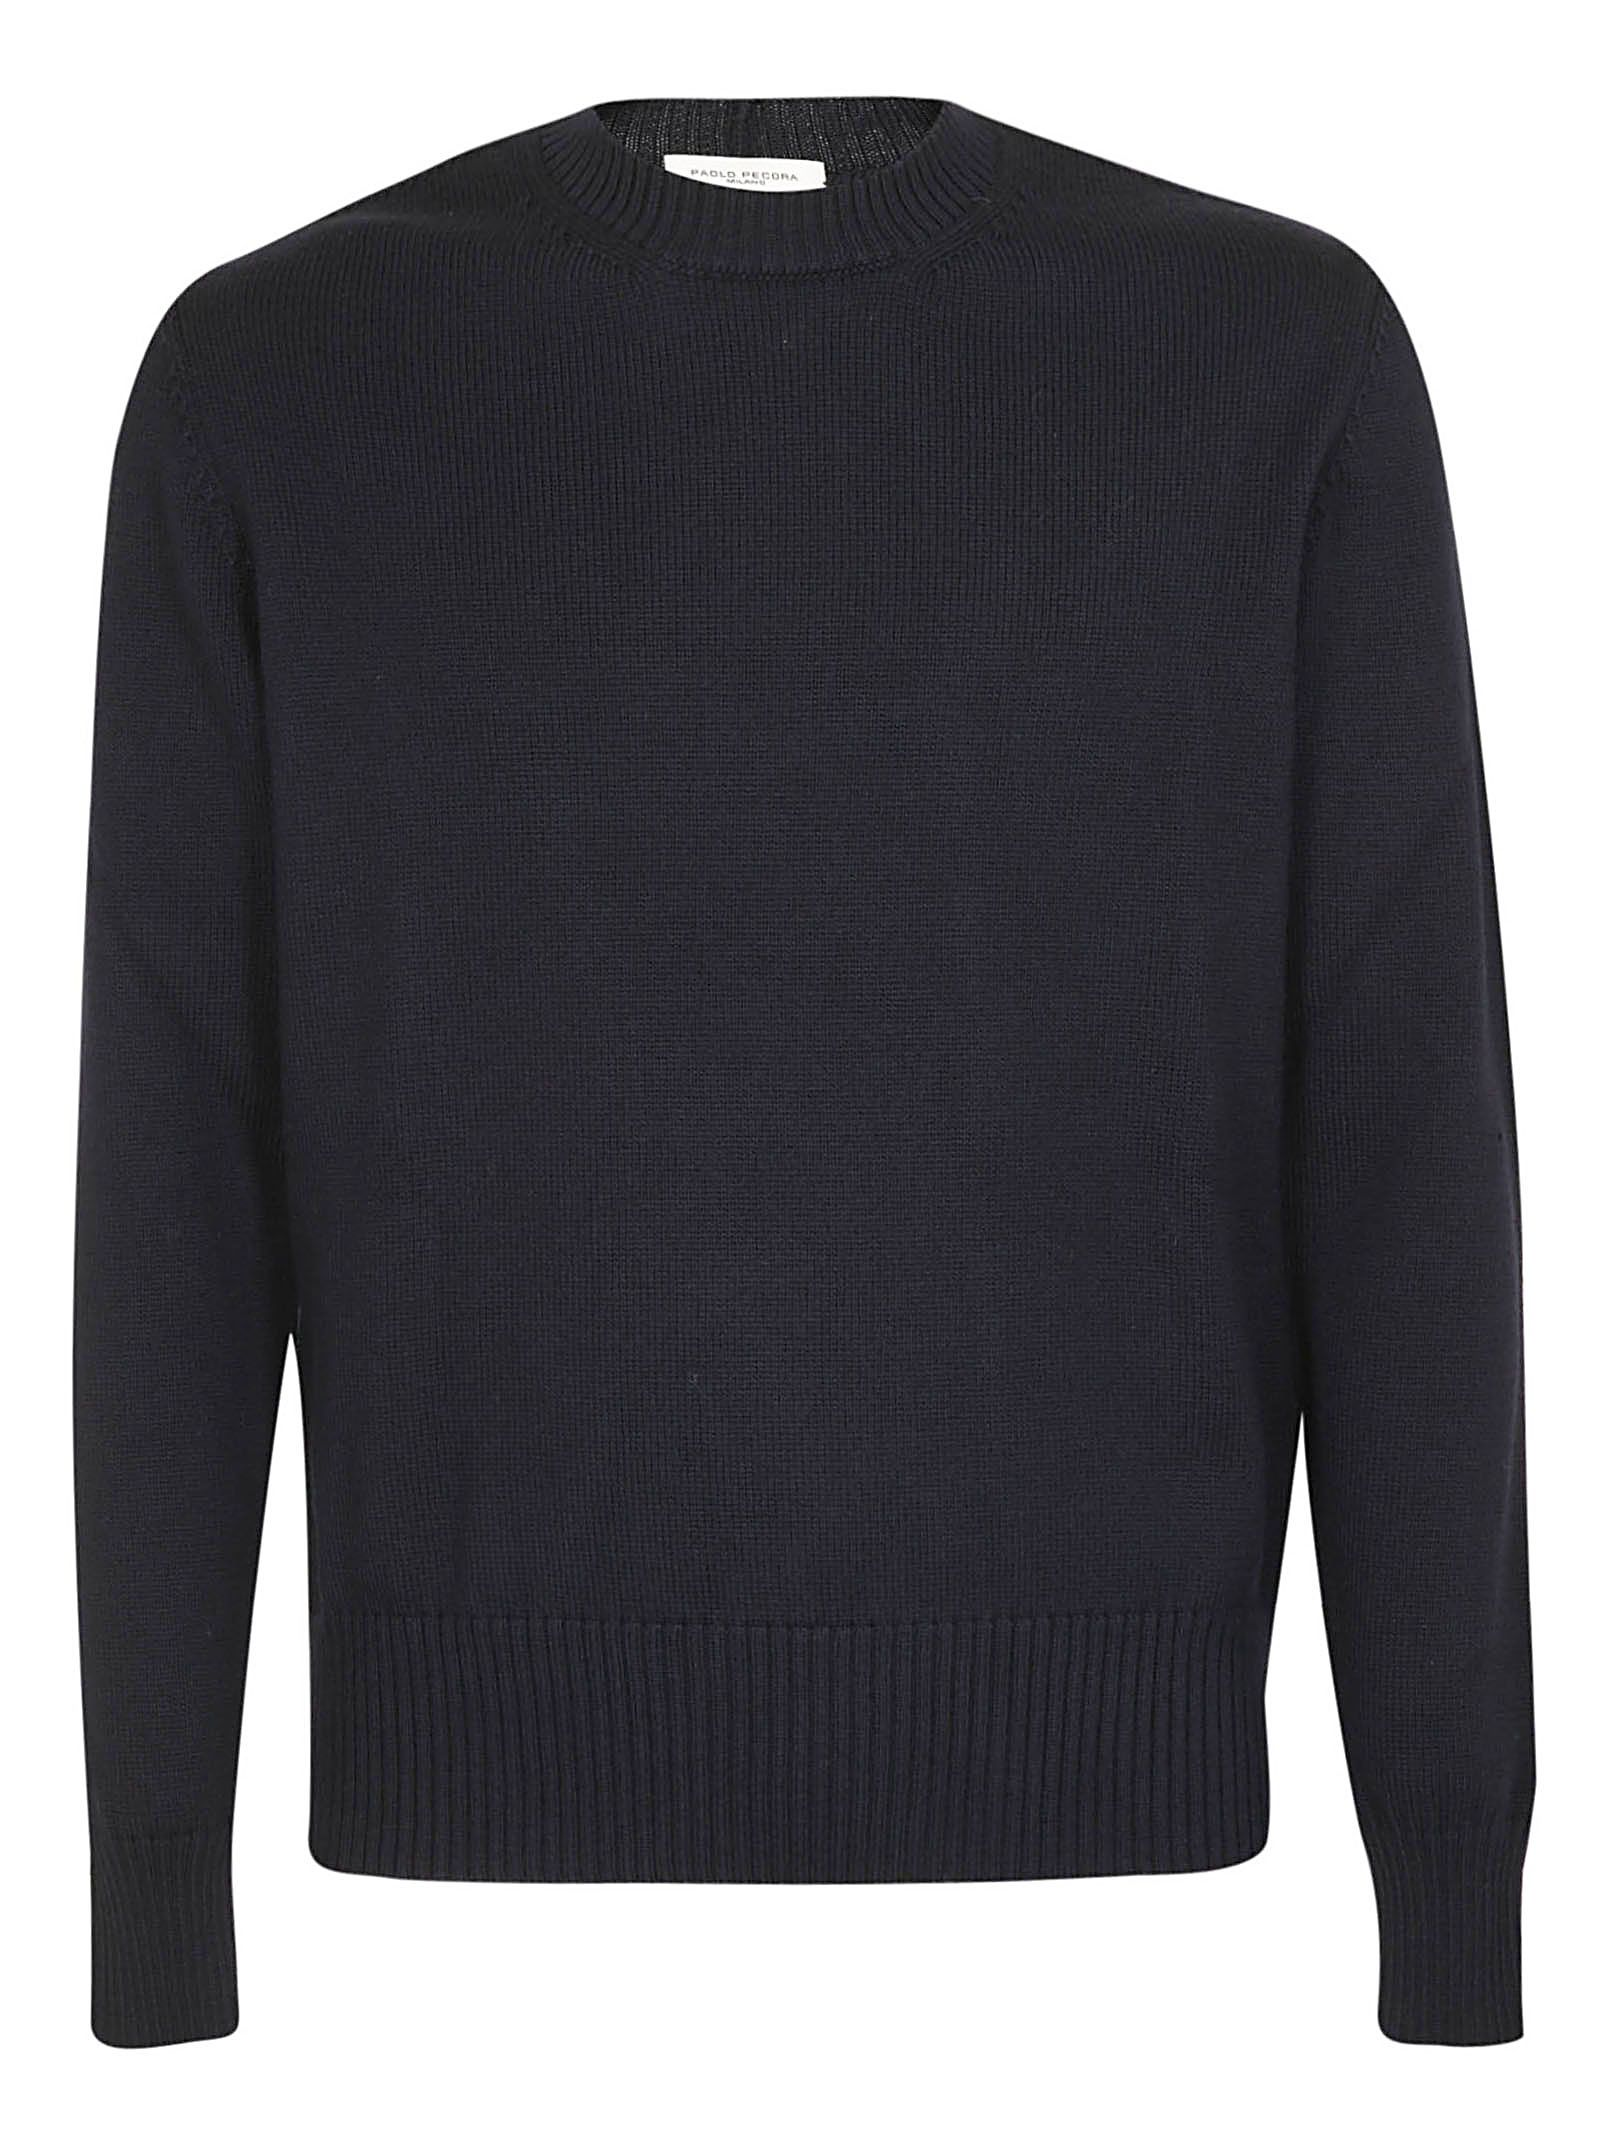 Paolo Pecora Knitted Sweater